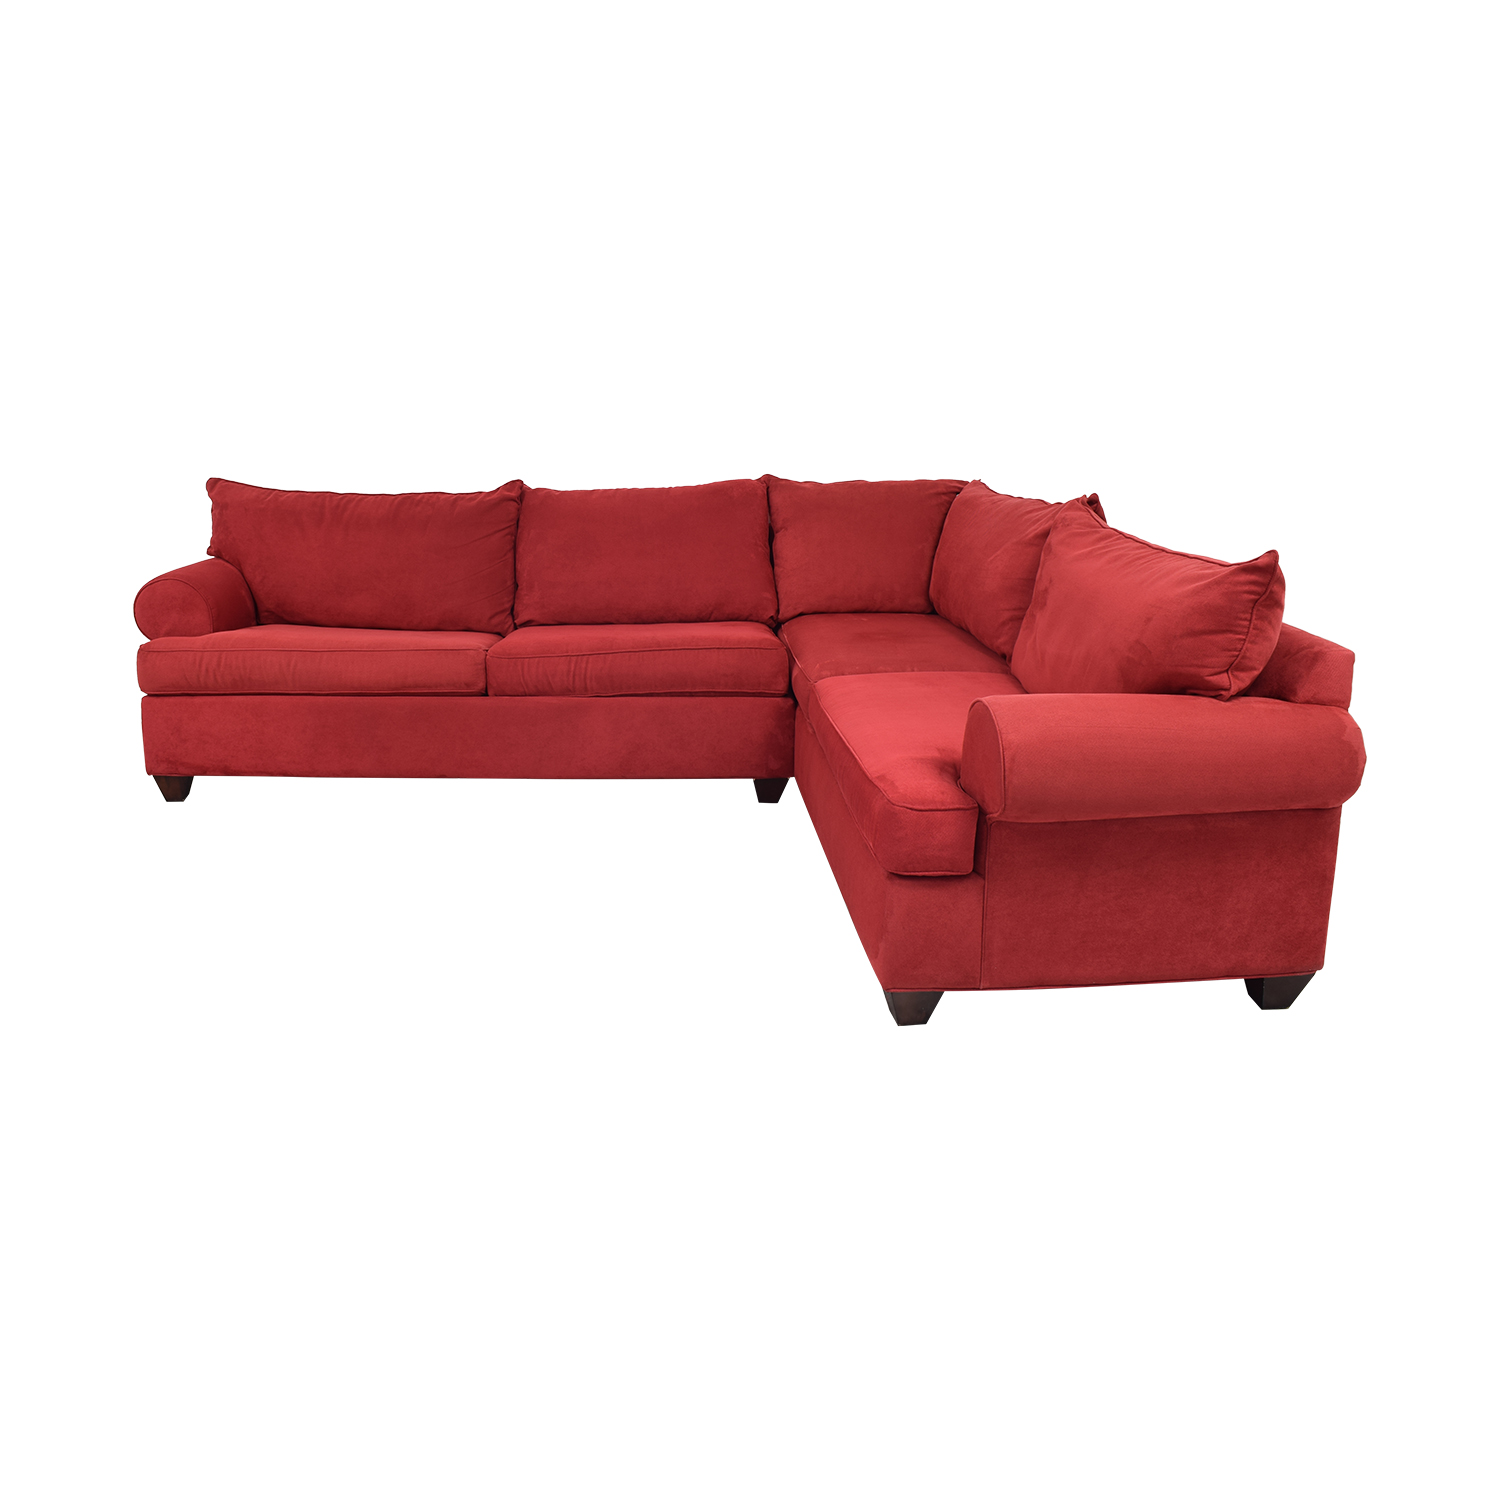 Raymour & Flanigan Sleeper Sectional Sofa / Sofas